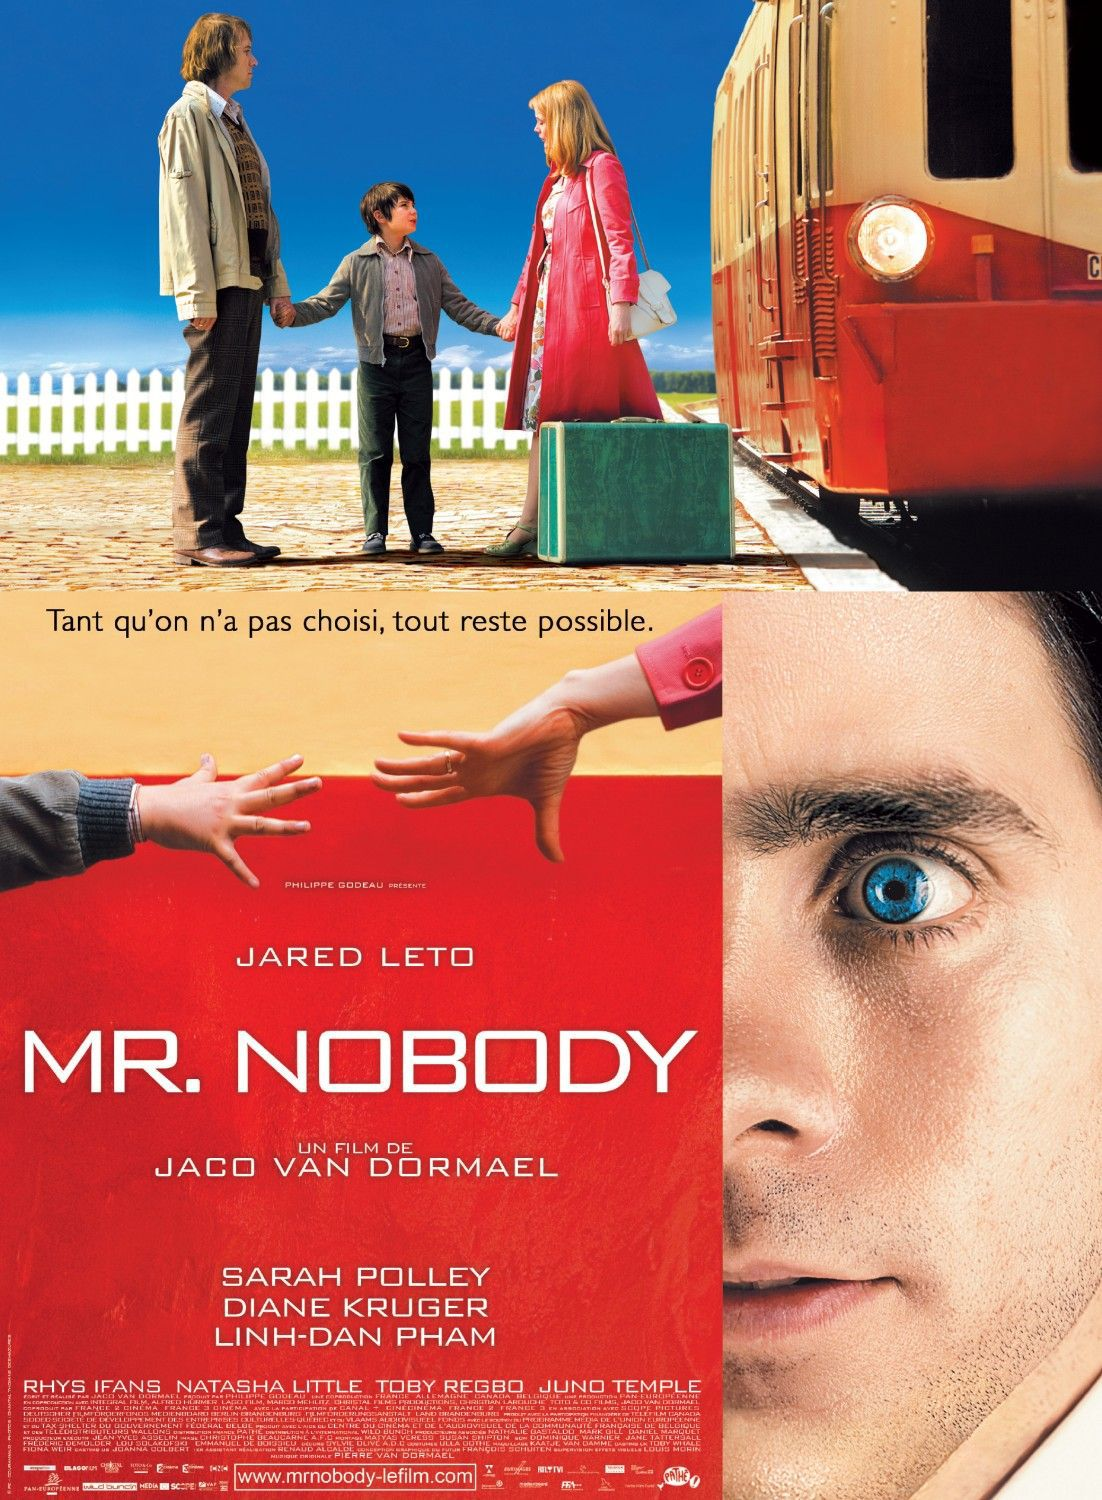 Mr. Nobody - Film (2009) streaming VF gratuit complet